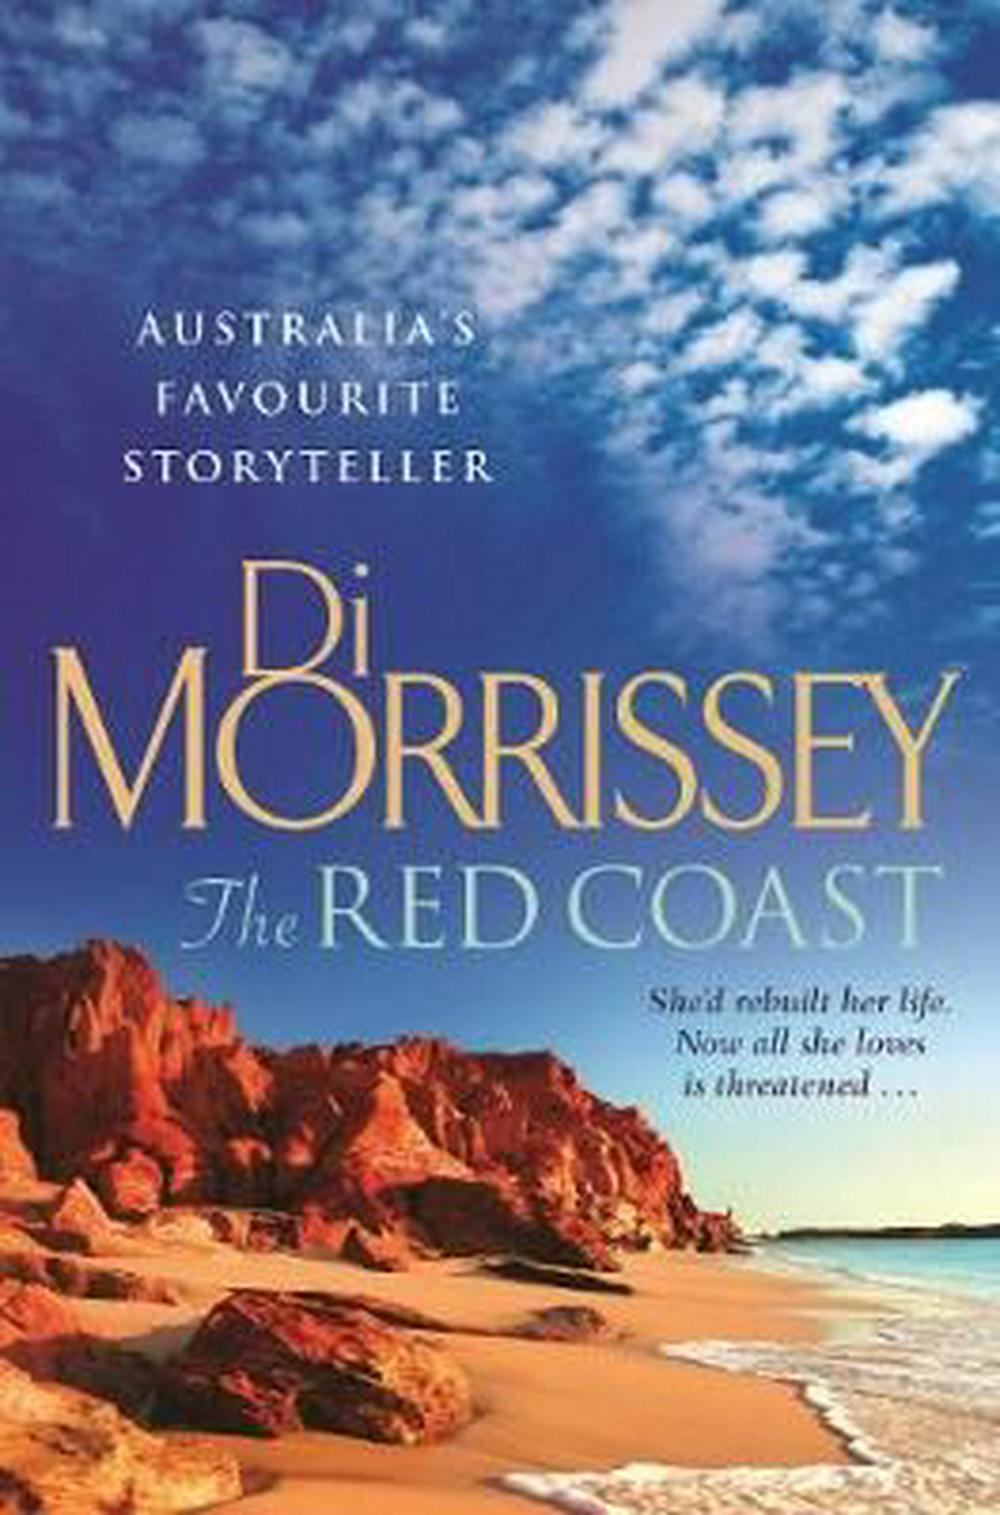 The Red Coast by Di Morrissey, ISBN: 9781925481549